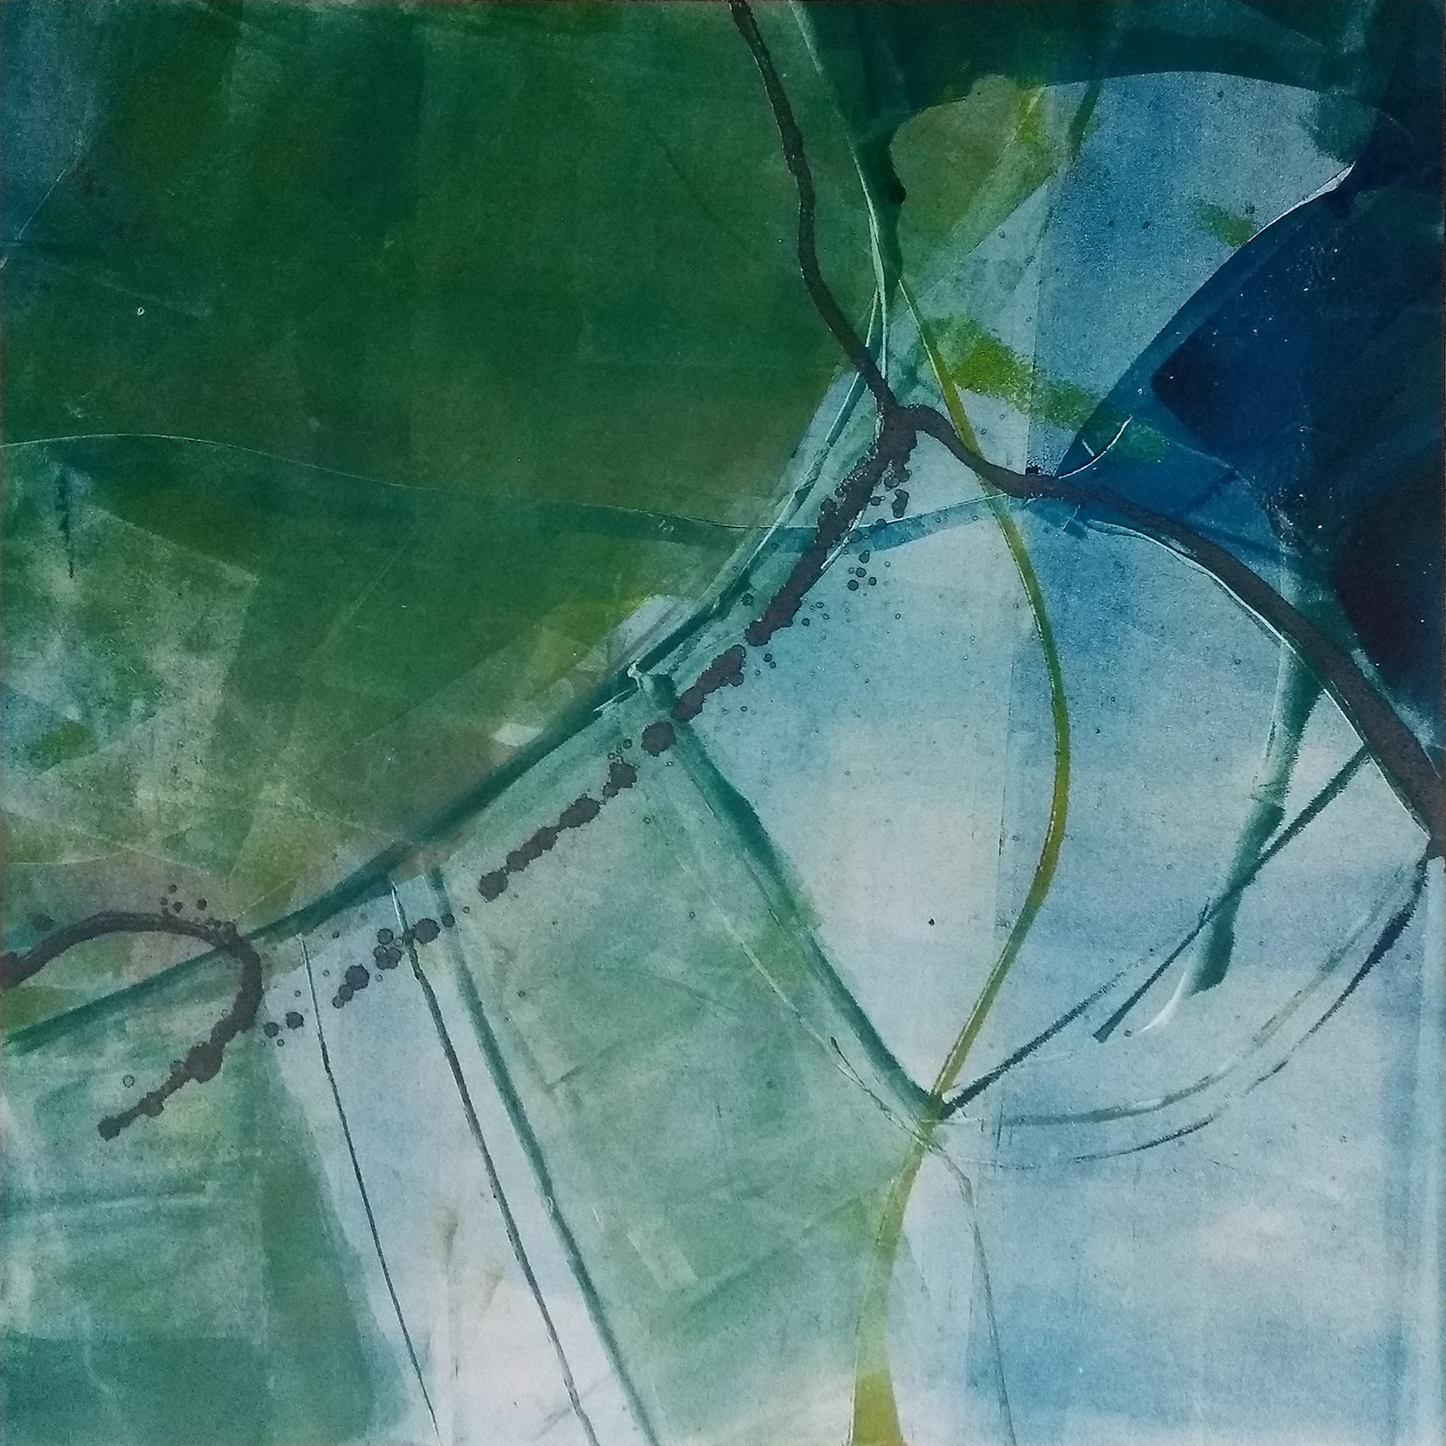 46 - oil based ink monoprint, 51 x 51 cm